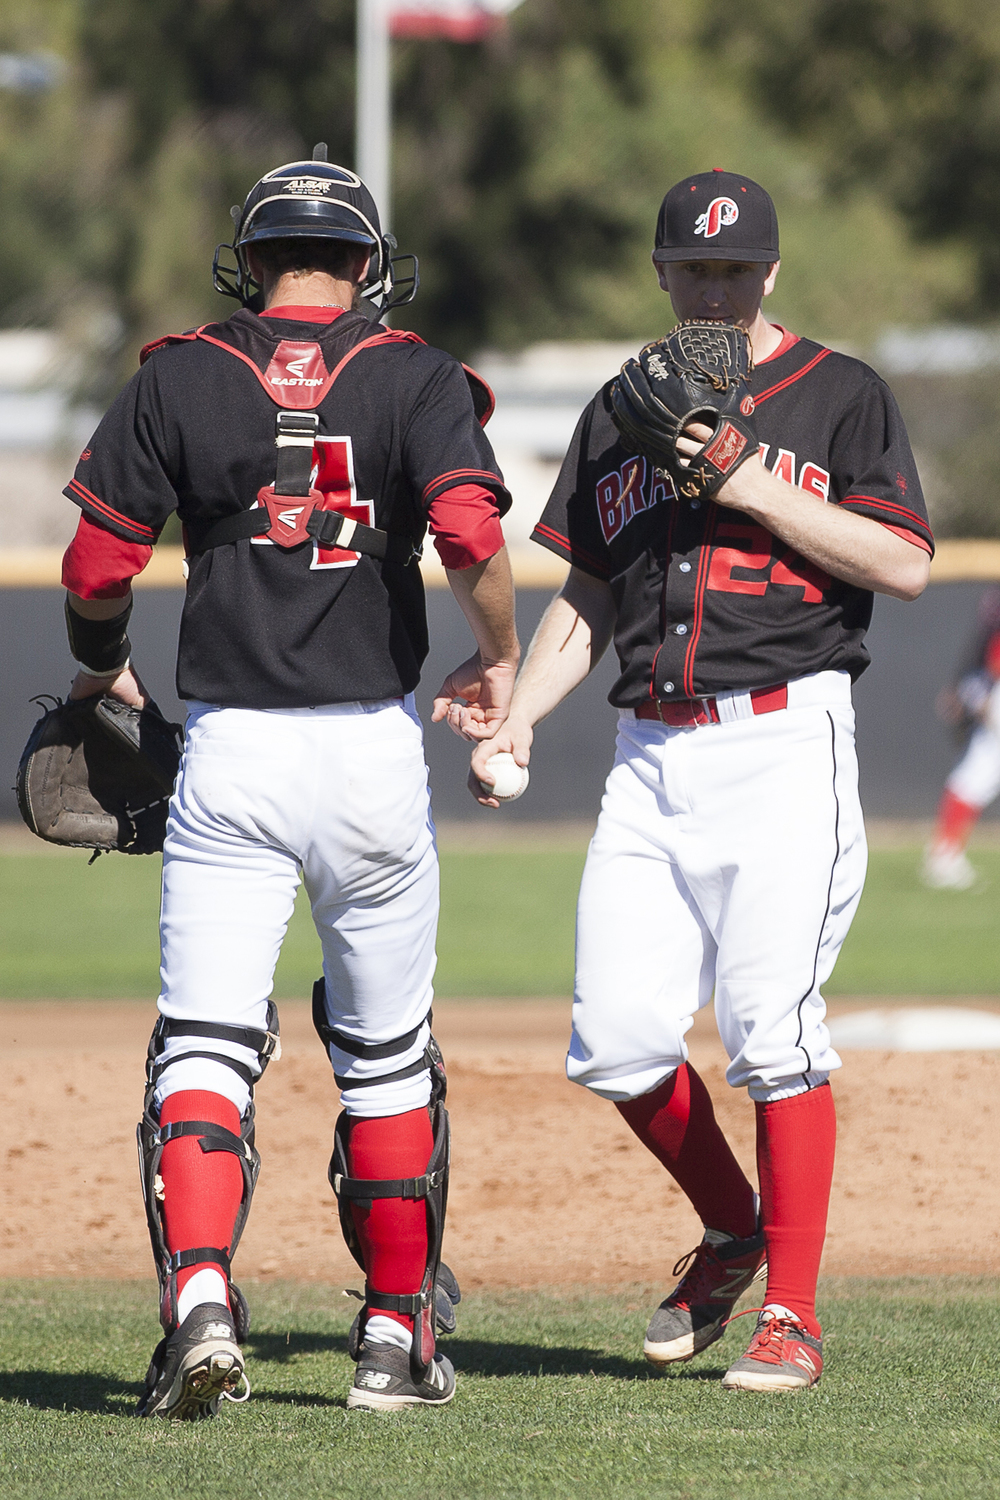 Evan Yeager, left, has a brief meeting with Brett Weisberg on the mound before facing the next Glendale batter during a home game in Woodland Hills, Calif., against Glendale College on Saturday, Feb. 13, 2016.